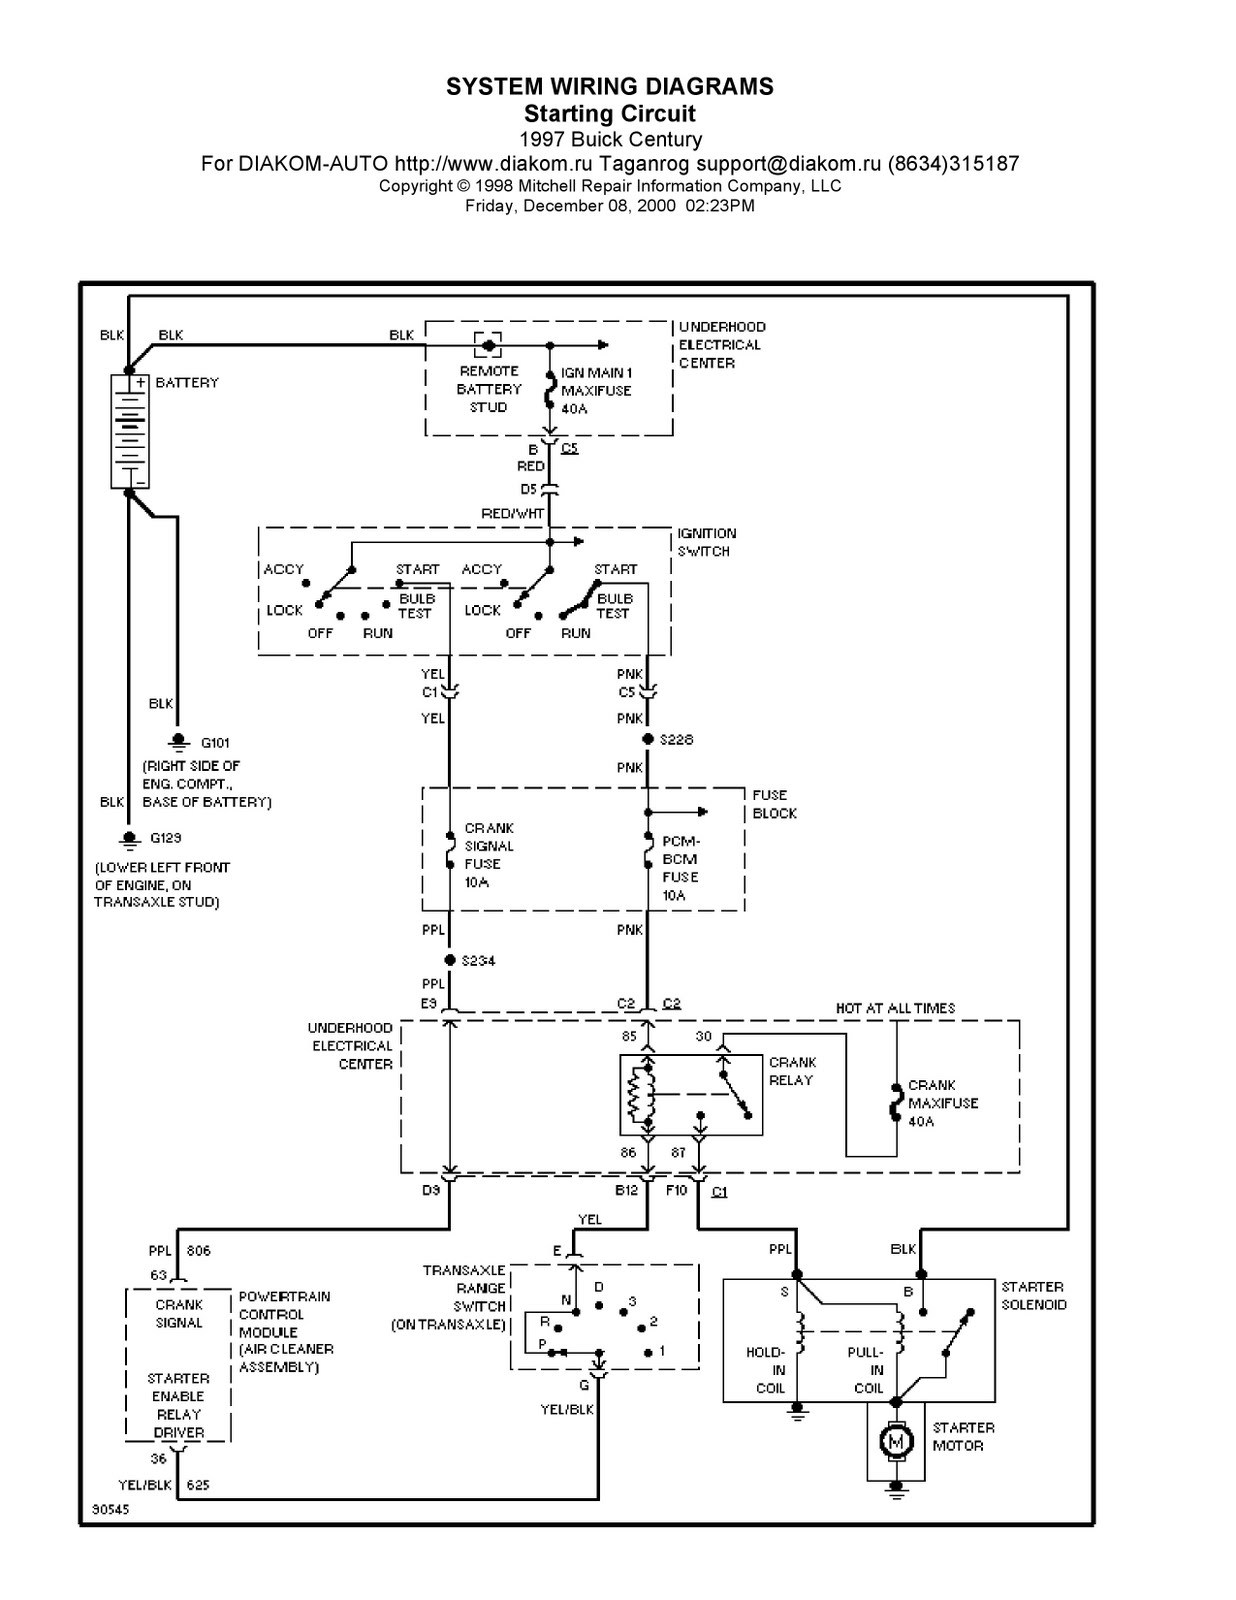 1997 Buick Century System Wiring Diagram Starting Circuit As Well Ignition Switch